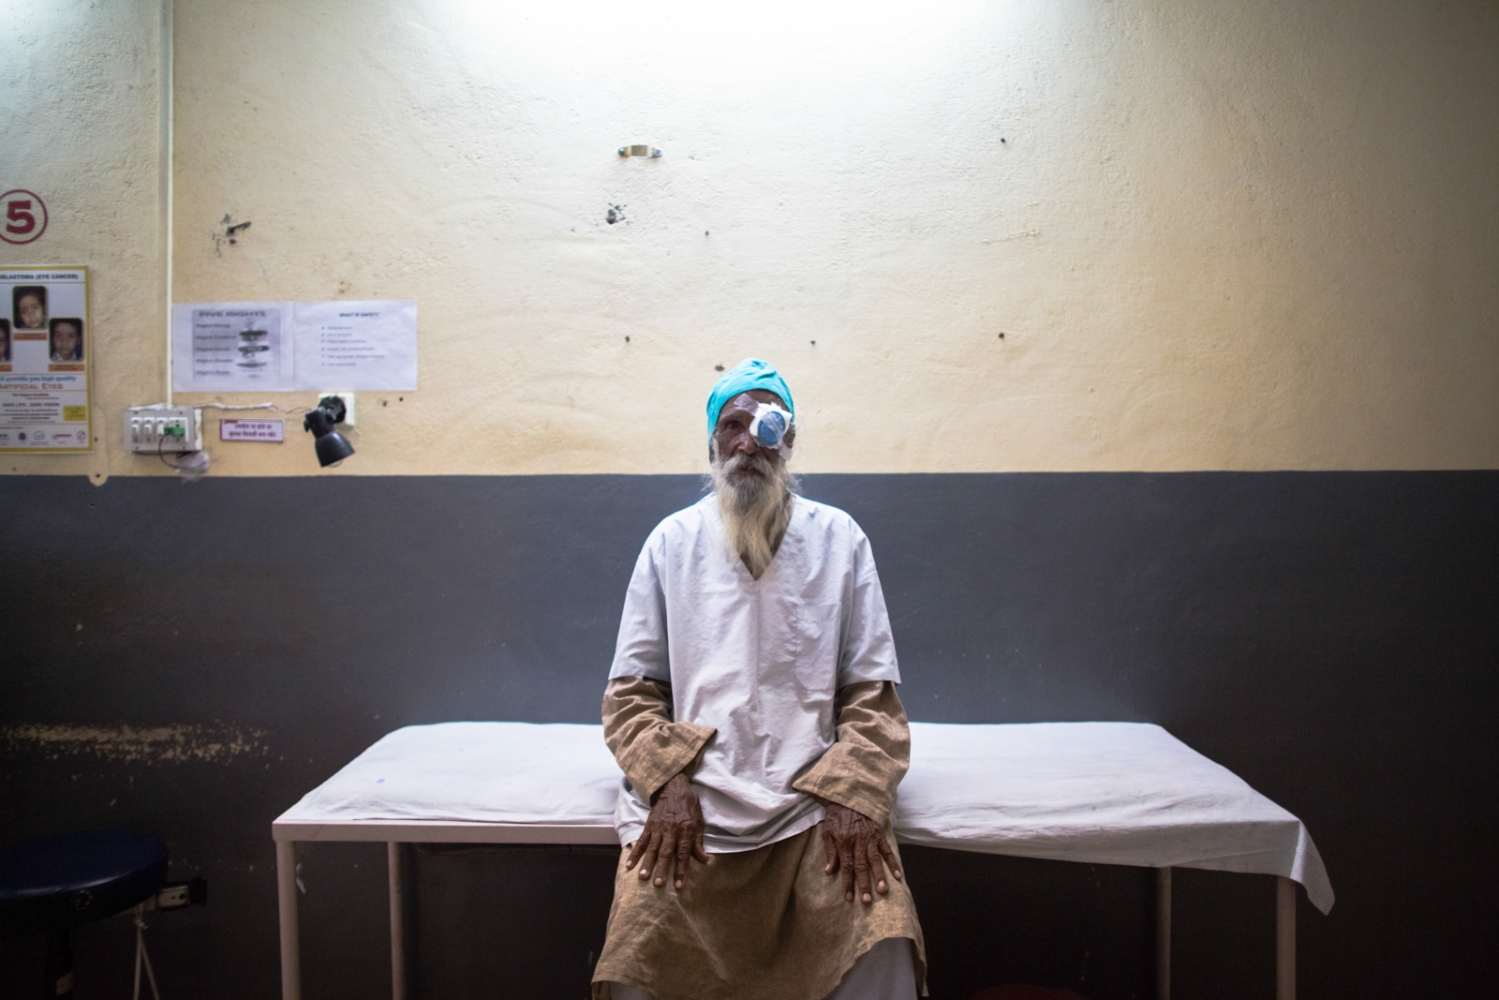 Indian cataract patient Balaji sits on an examination table after undergoing surgery at the Dr Shroff Charity Eye Hospital in Alwar in the state of Rajasthan on August 28, 2014.